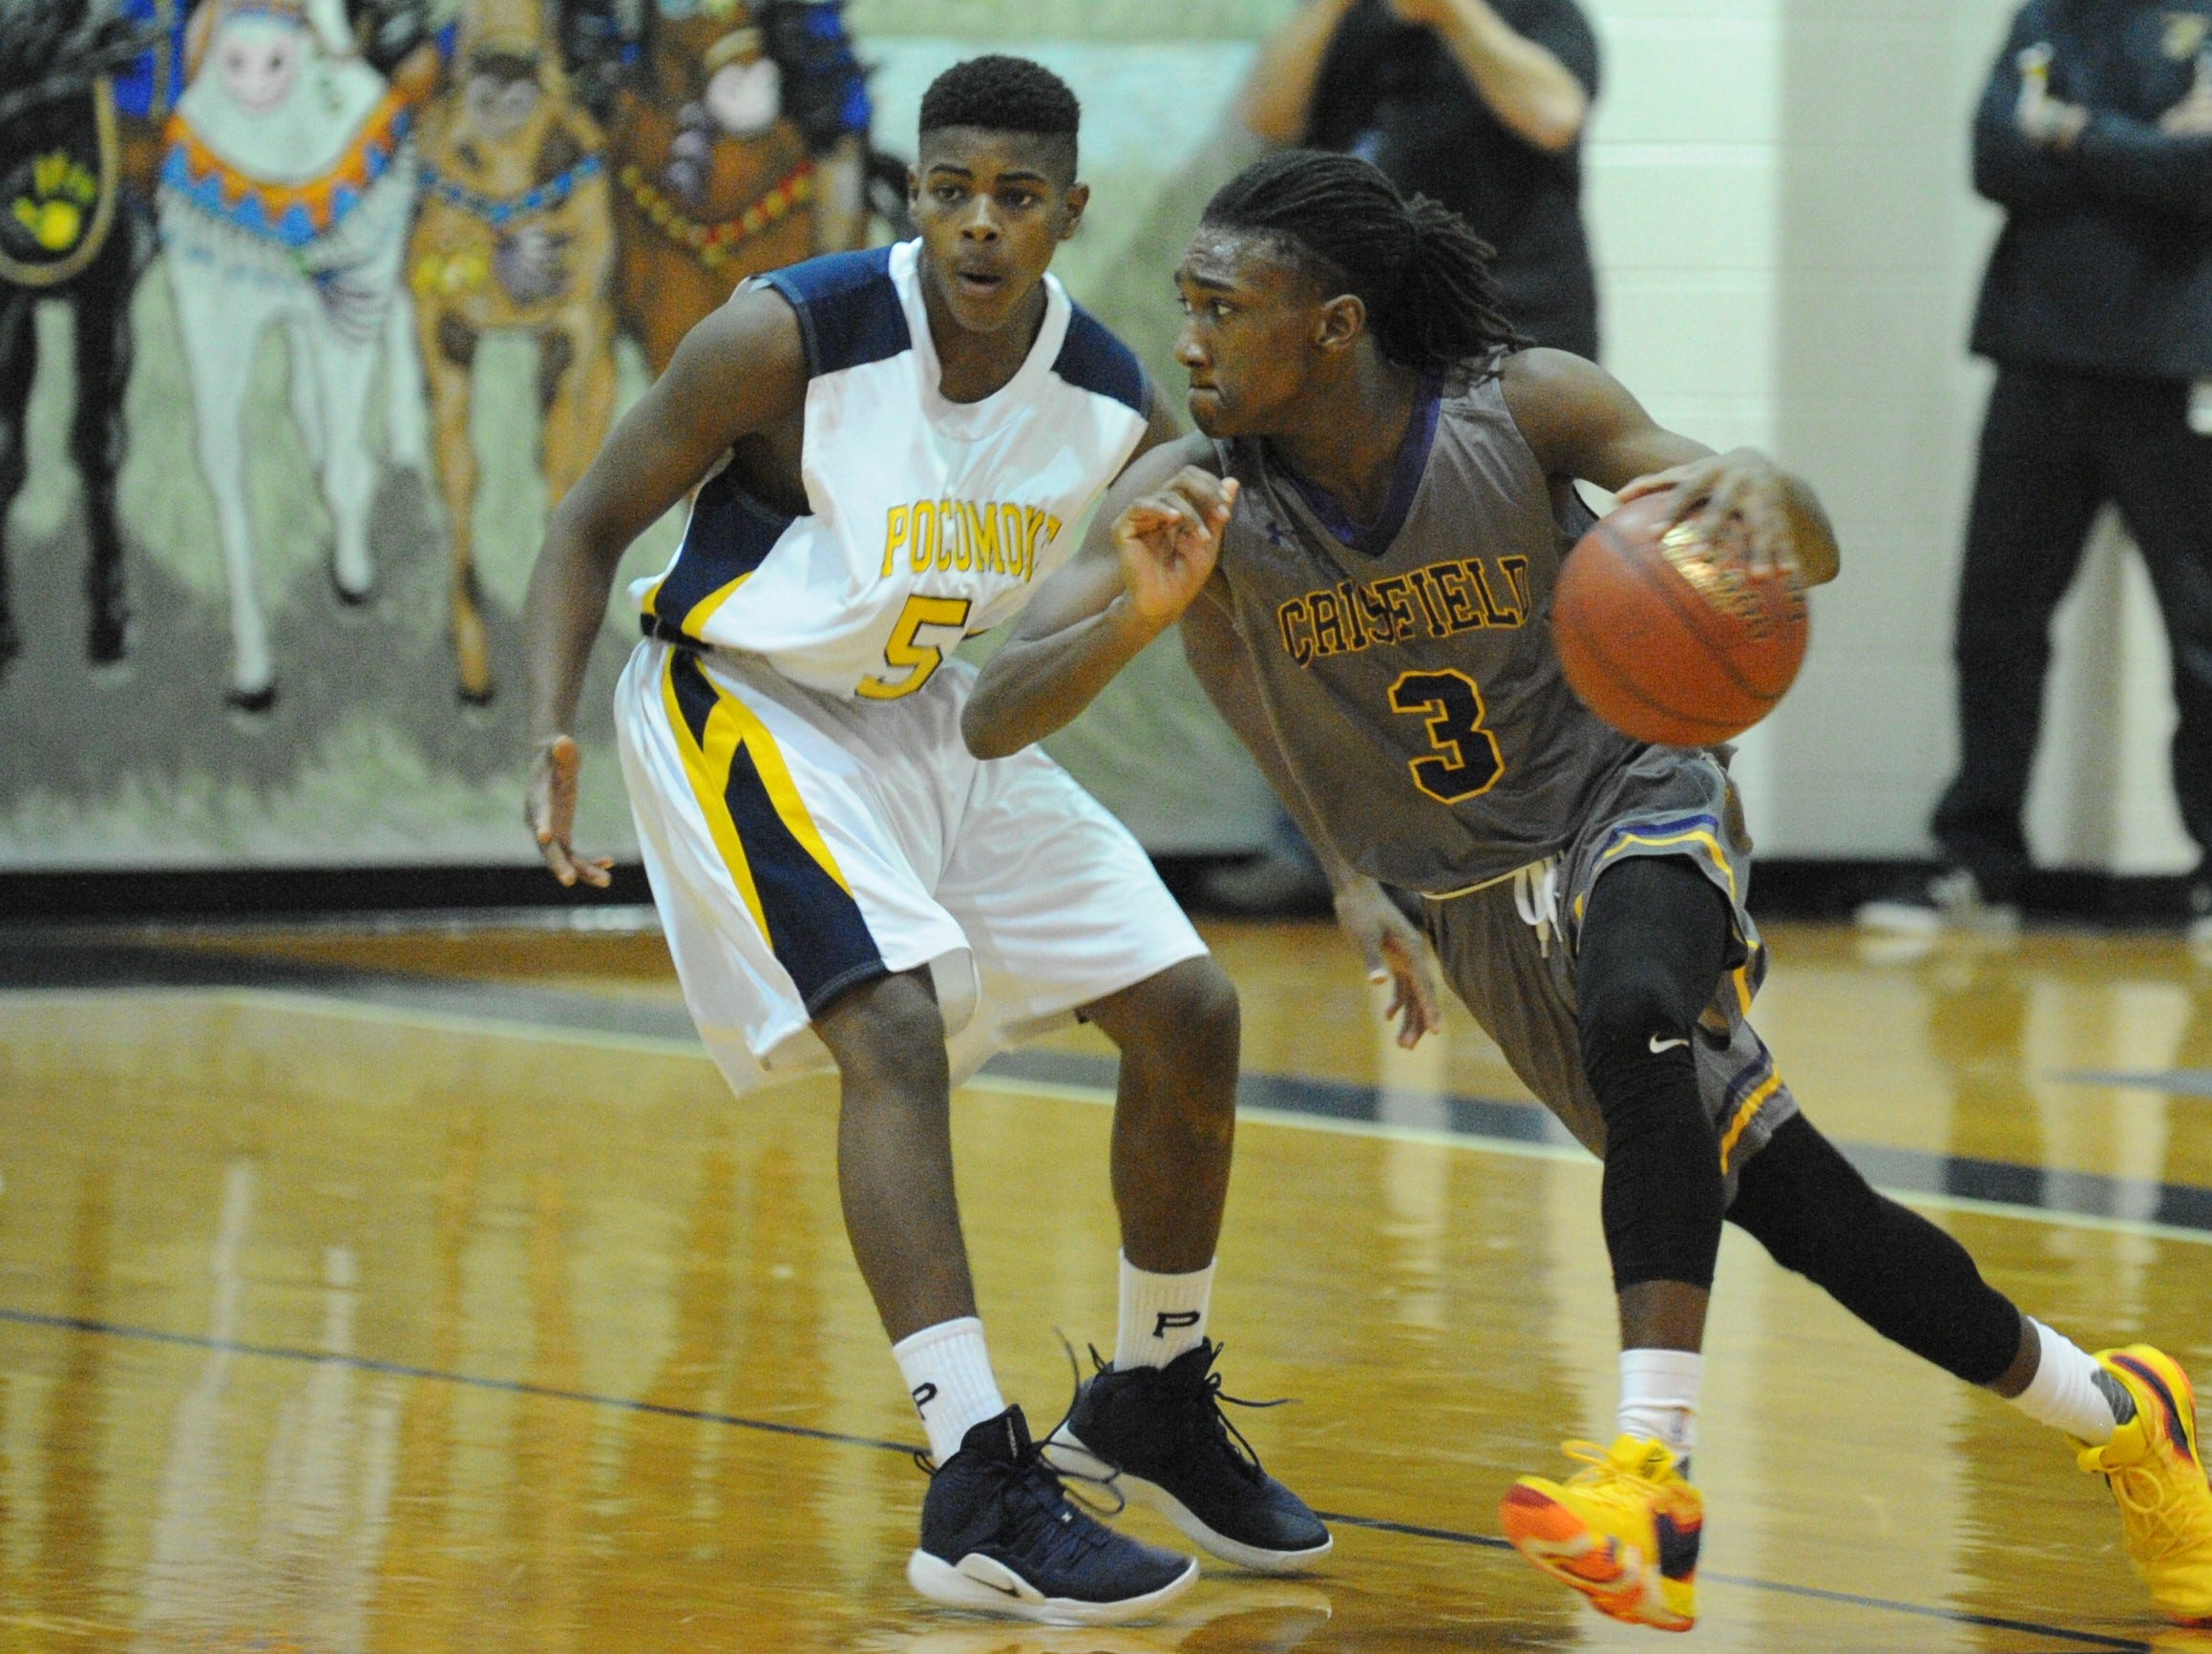 Crisfield's Rykell Waters takes the ball past Pocomoke's Nick Evans on Tuesday, Dec. 18, 2018. Crisfield won the game, 90-35.